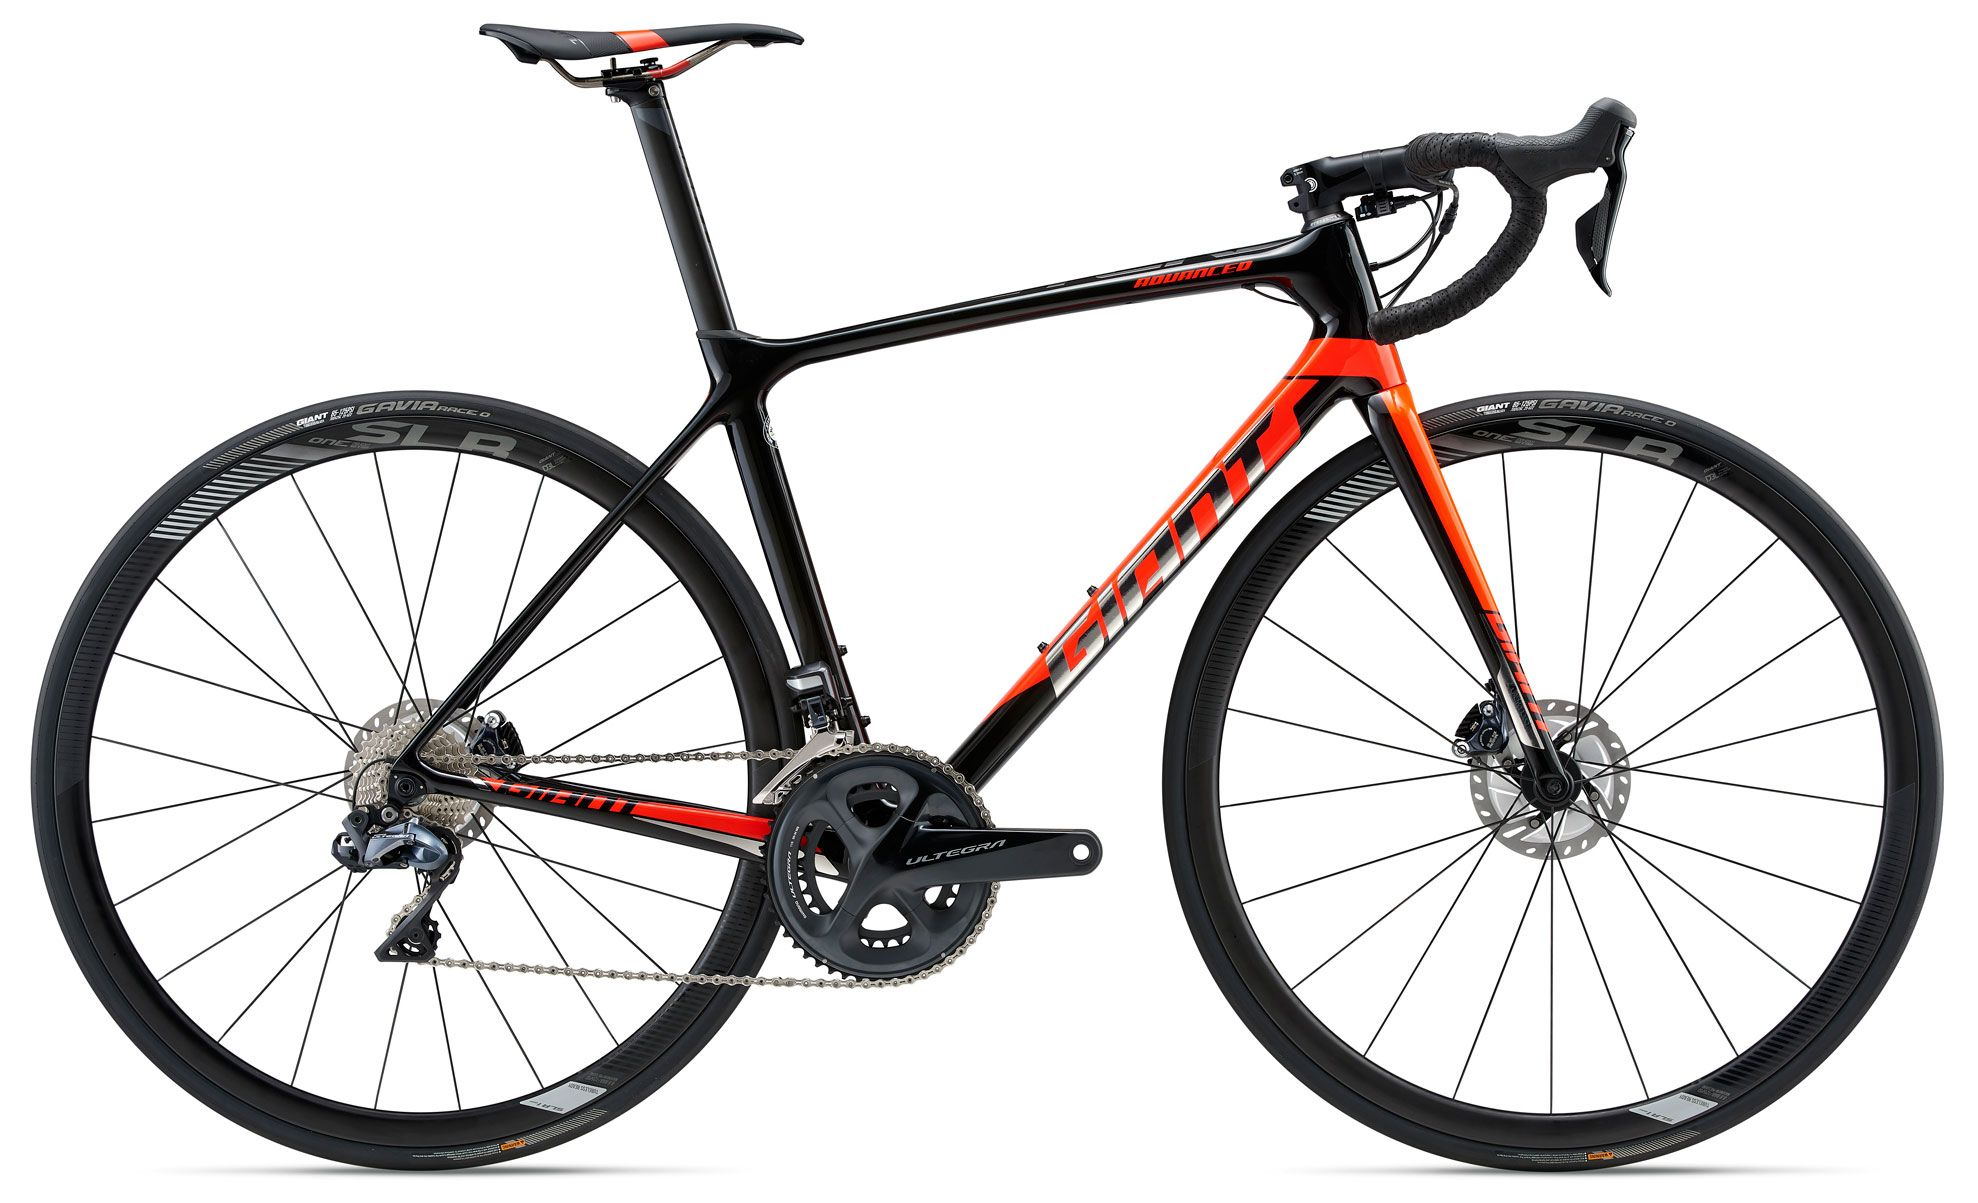 Велосипед Giant TCR Advanced Pro 0 Disc 2018 велосипед giant defy advanced pro 0 compact 2015